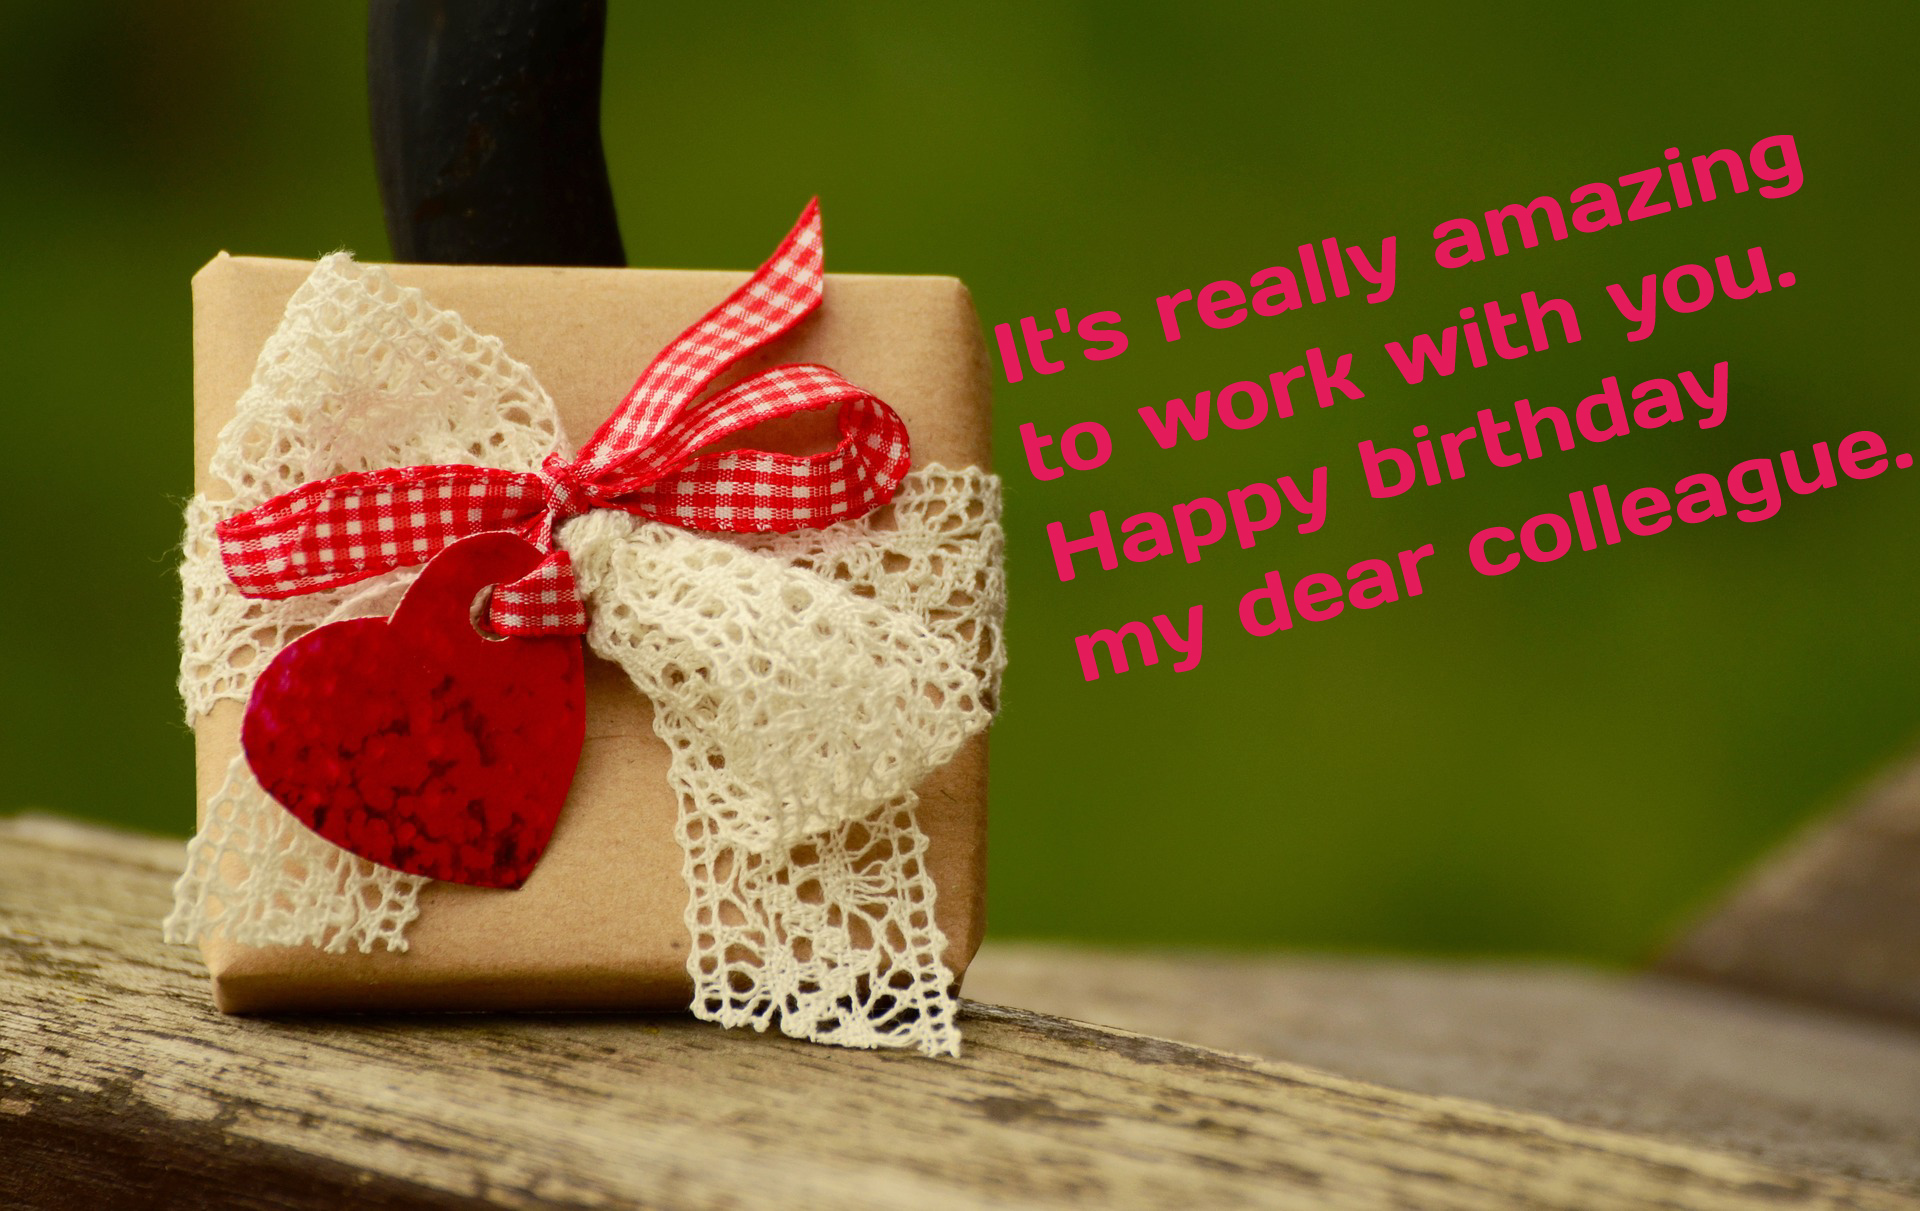 Happy birthday wishes for office colleagues